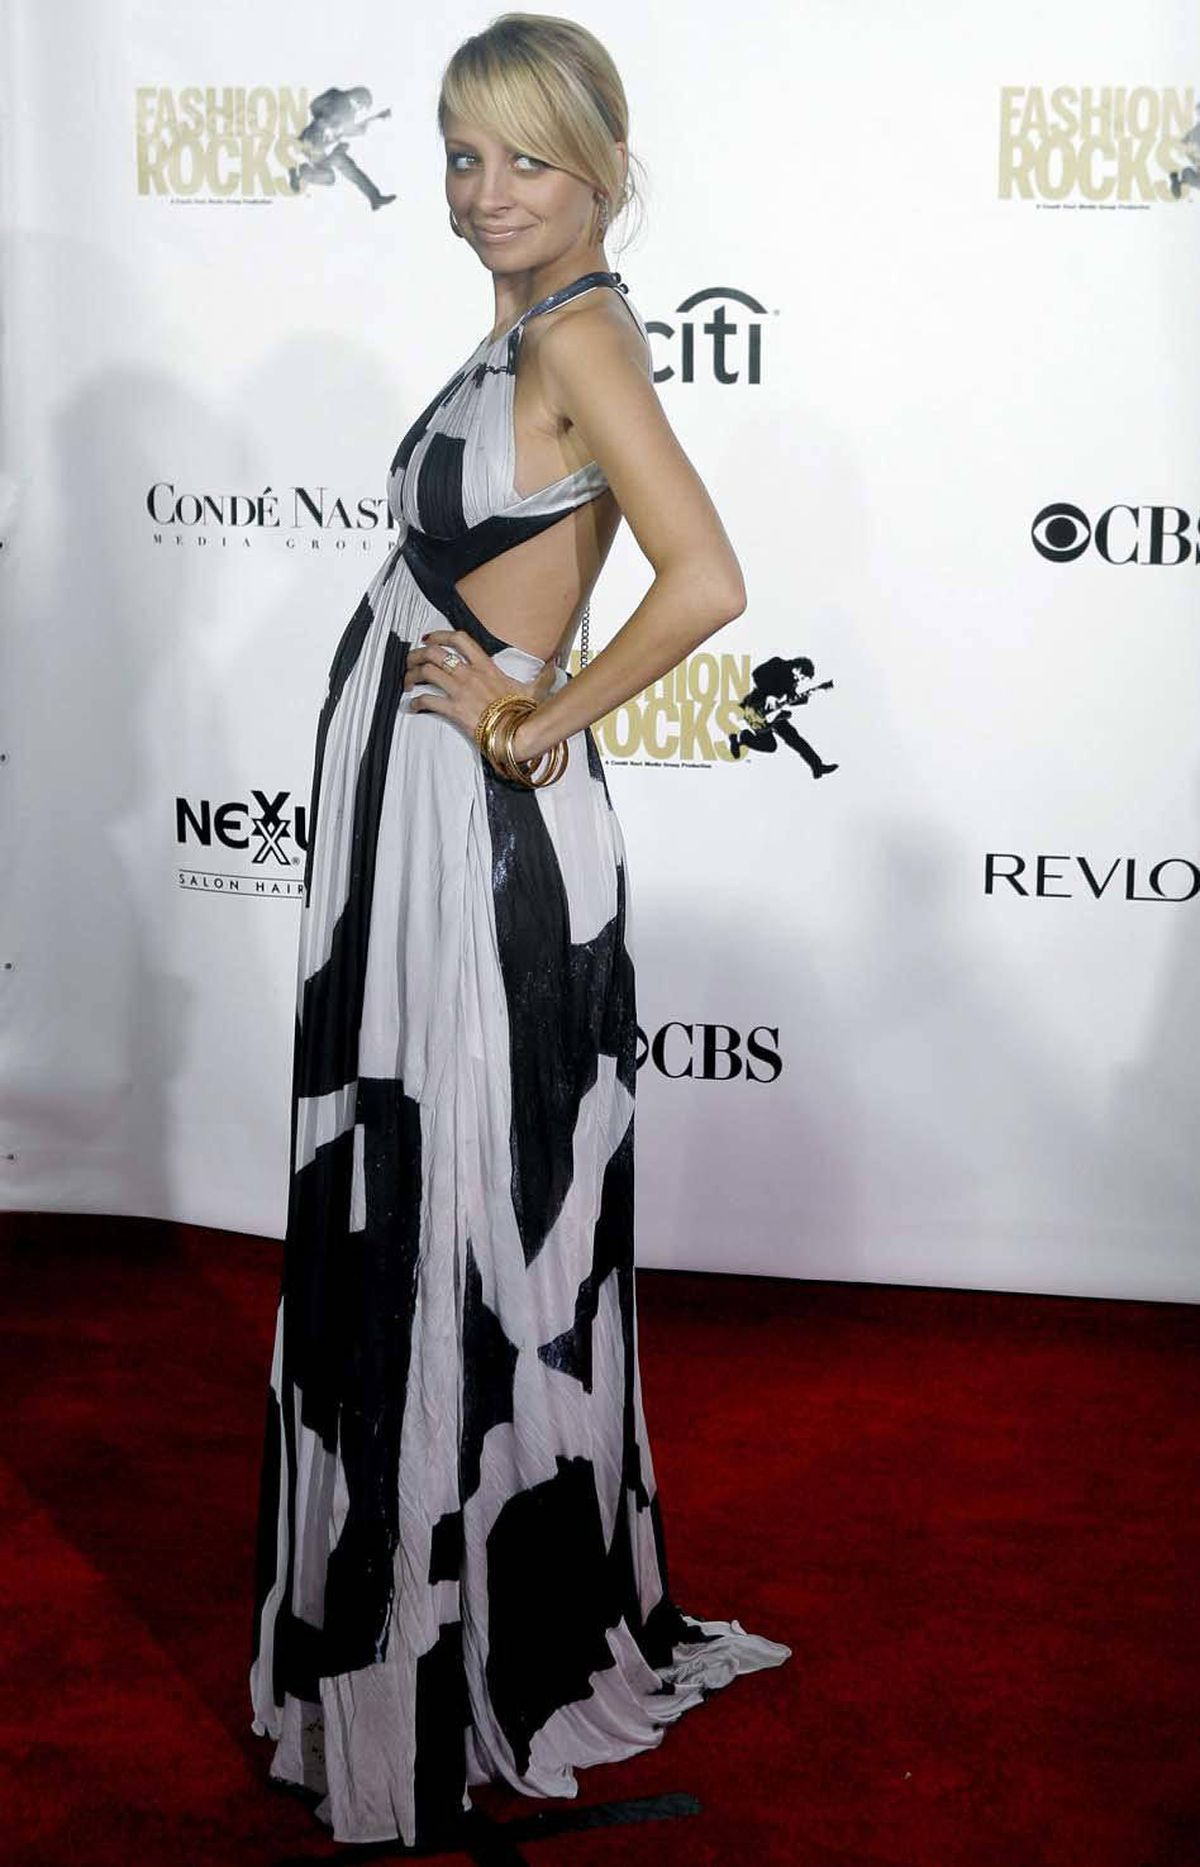 Soon enough, posing pregnant on the red carpet became common practice. Nicole Richie sticks out her bump at the 2007 Fashion Rocks Concert at Radio City Music Hall in New York on Sept. 6, 2007.